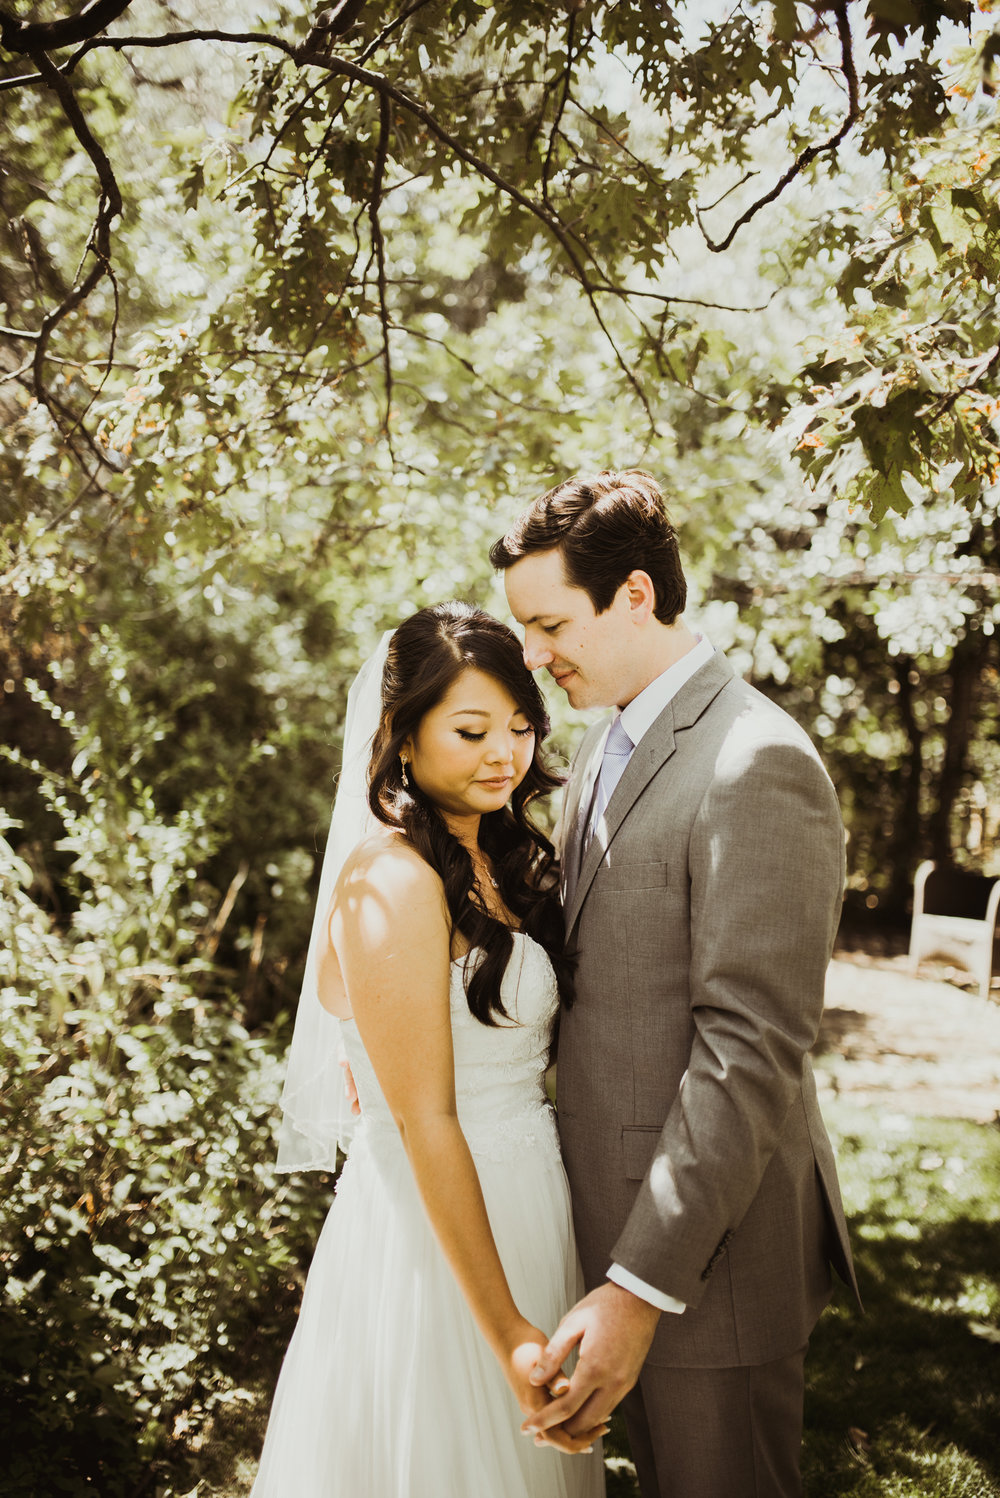 ©Isaiah + Taylor Photography - Sacred Mountain Ranch Wedding, Julian CA-77.jpg